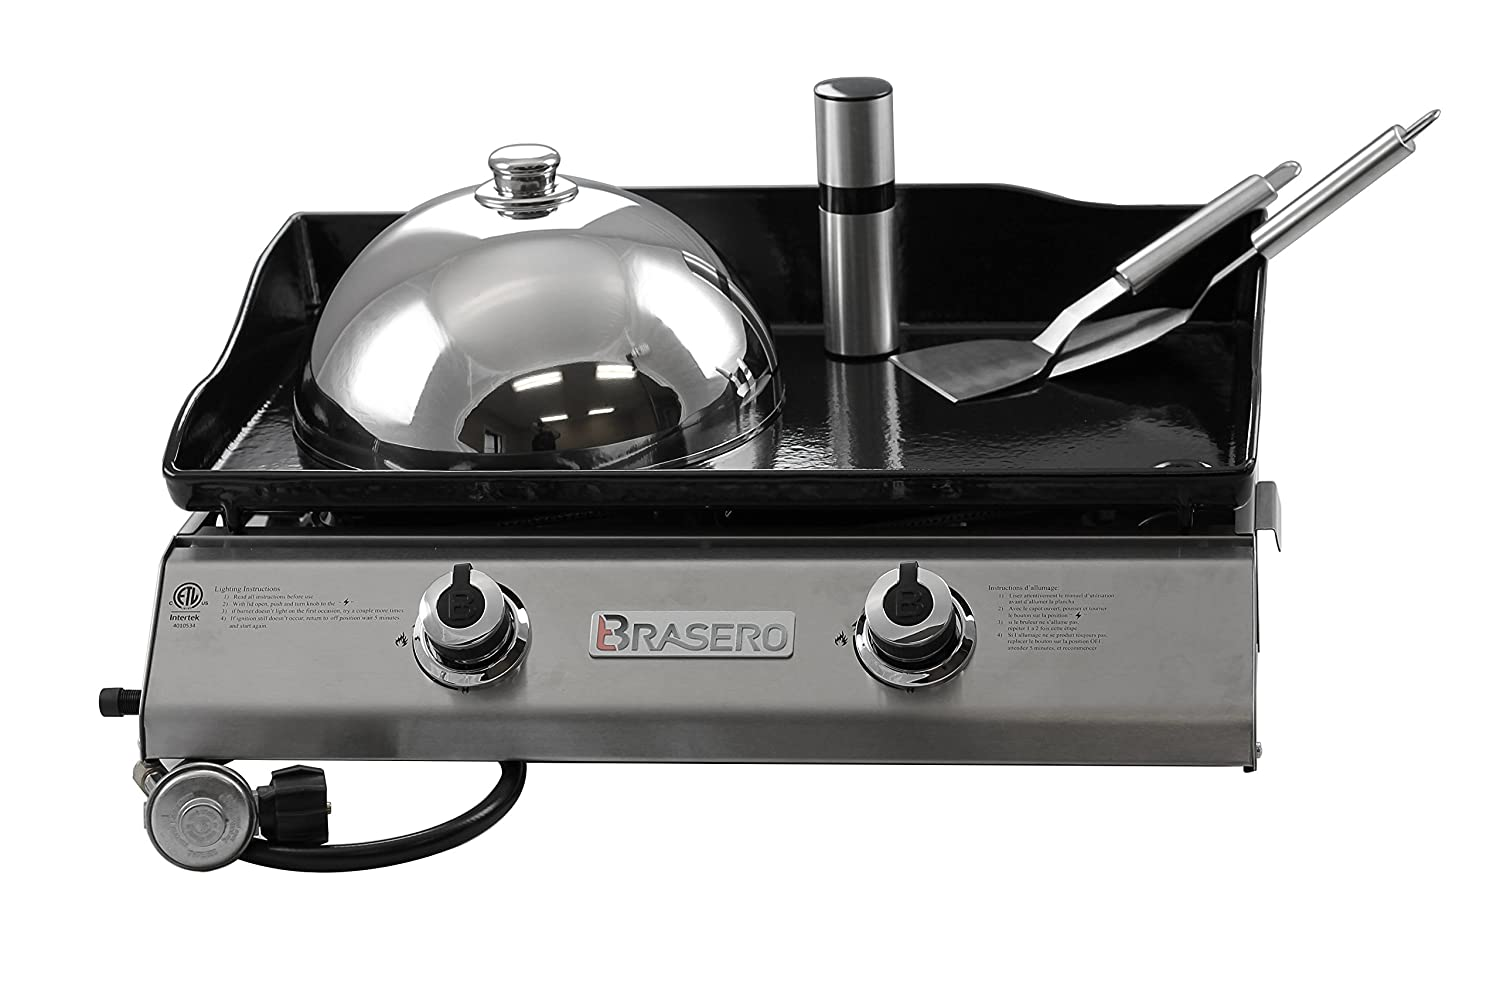 BraseroPortable 26 inch outdoor Flat top Gas griddle -2 burners-Stainless steel Body-Heavy duty Enameled Cast iron Griddle